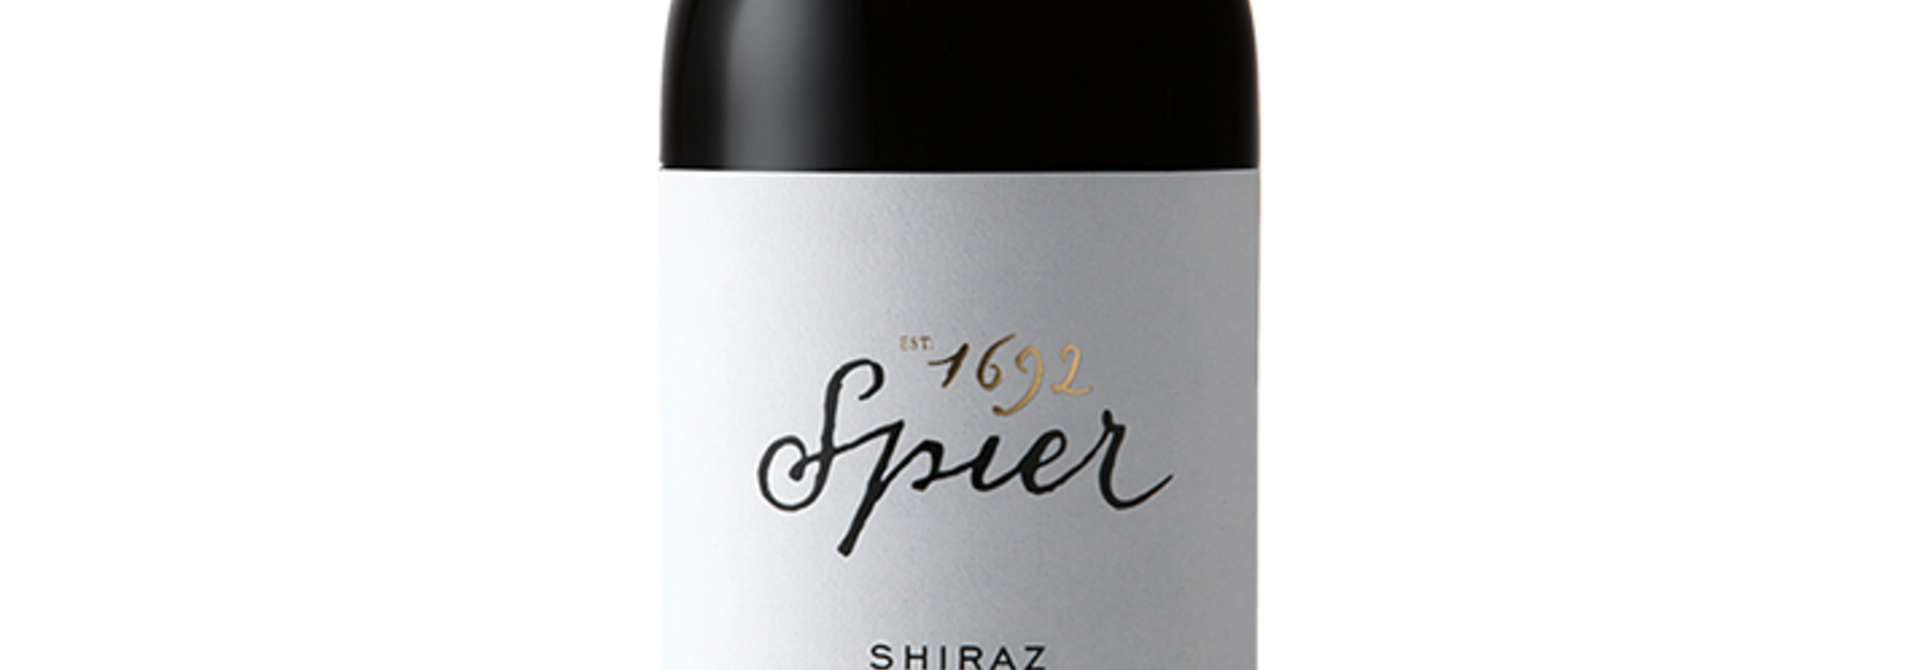 Spier Signature Shiraz